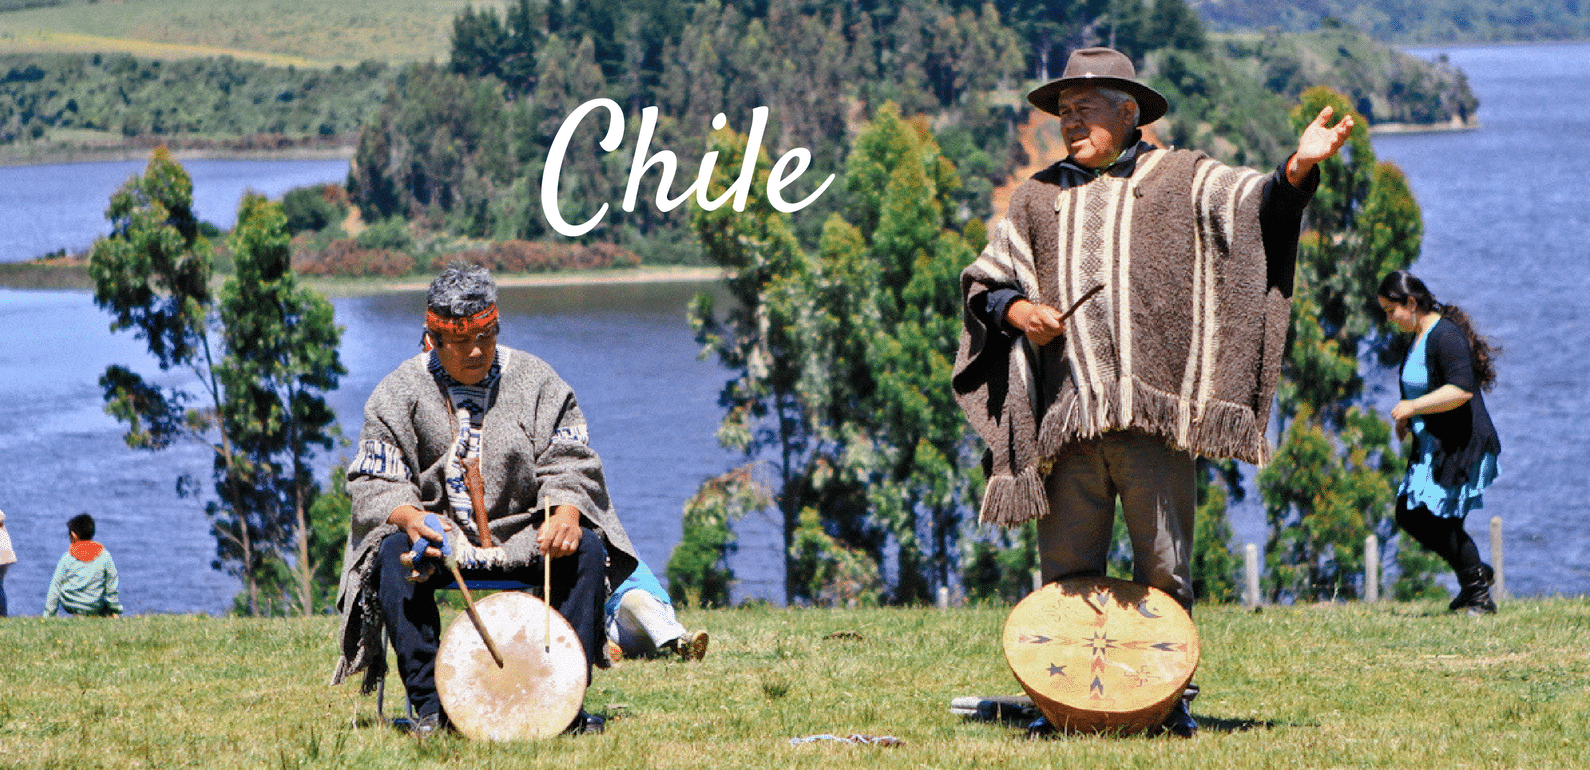 Araukanien in Chile - Land der Mapuche